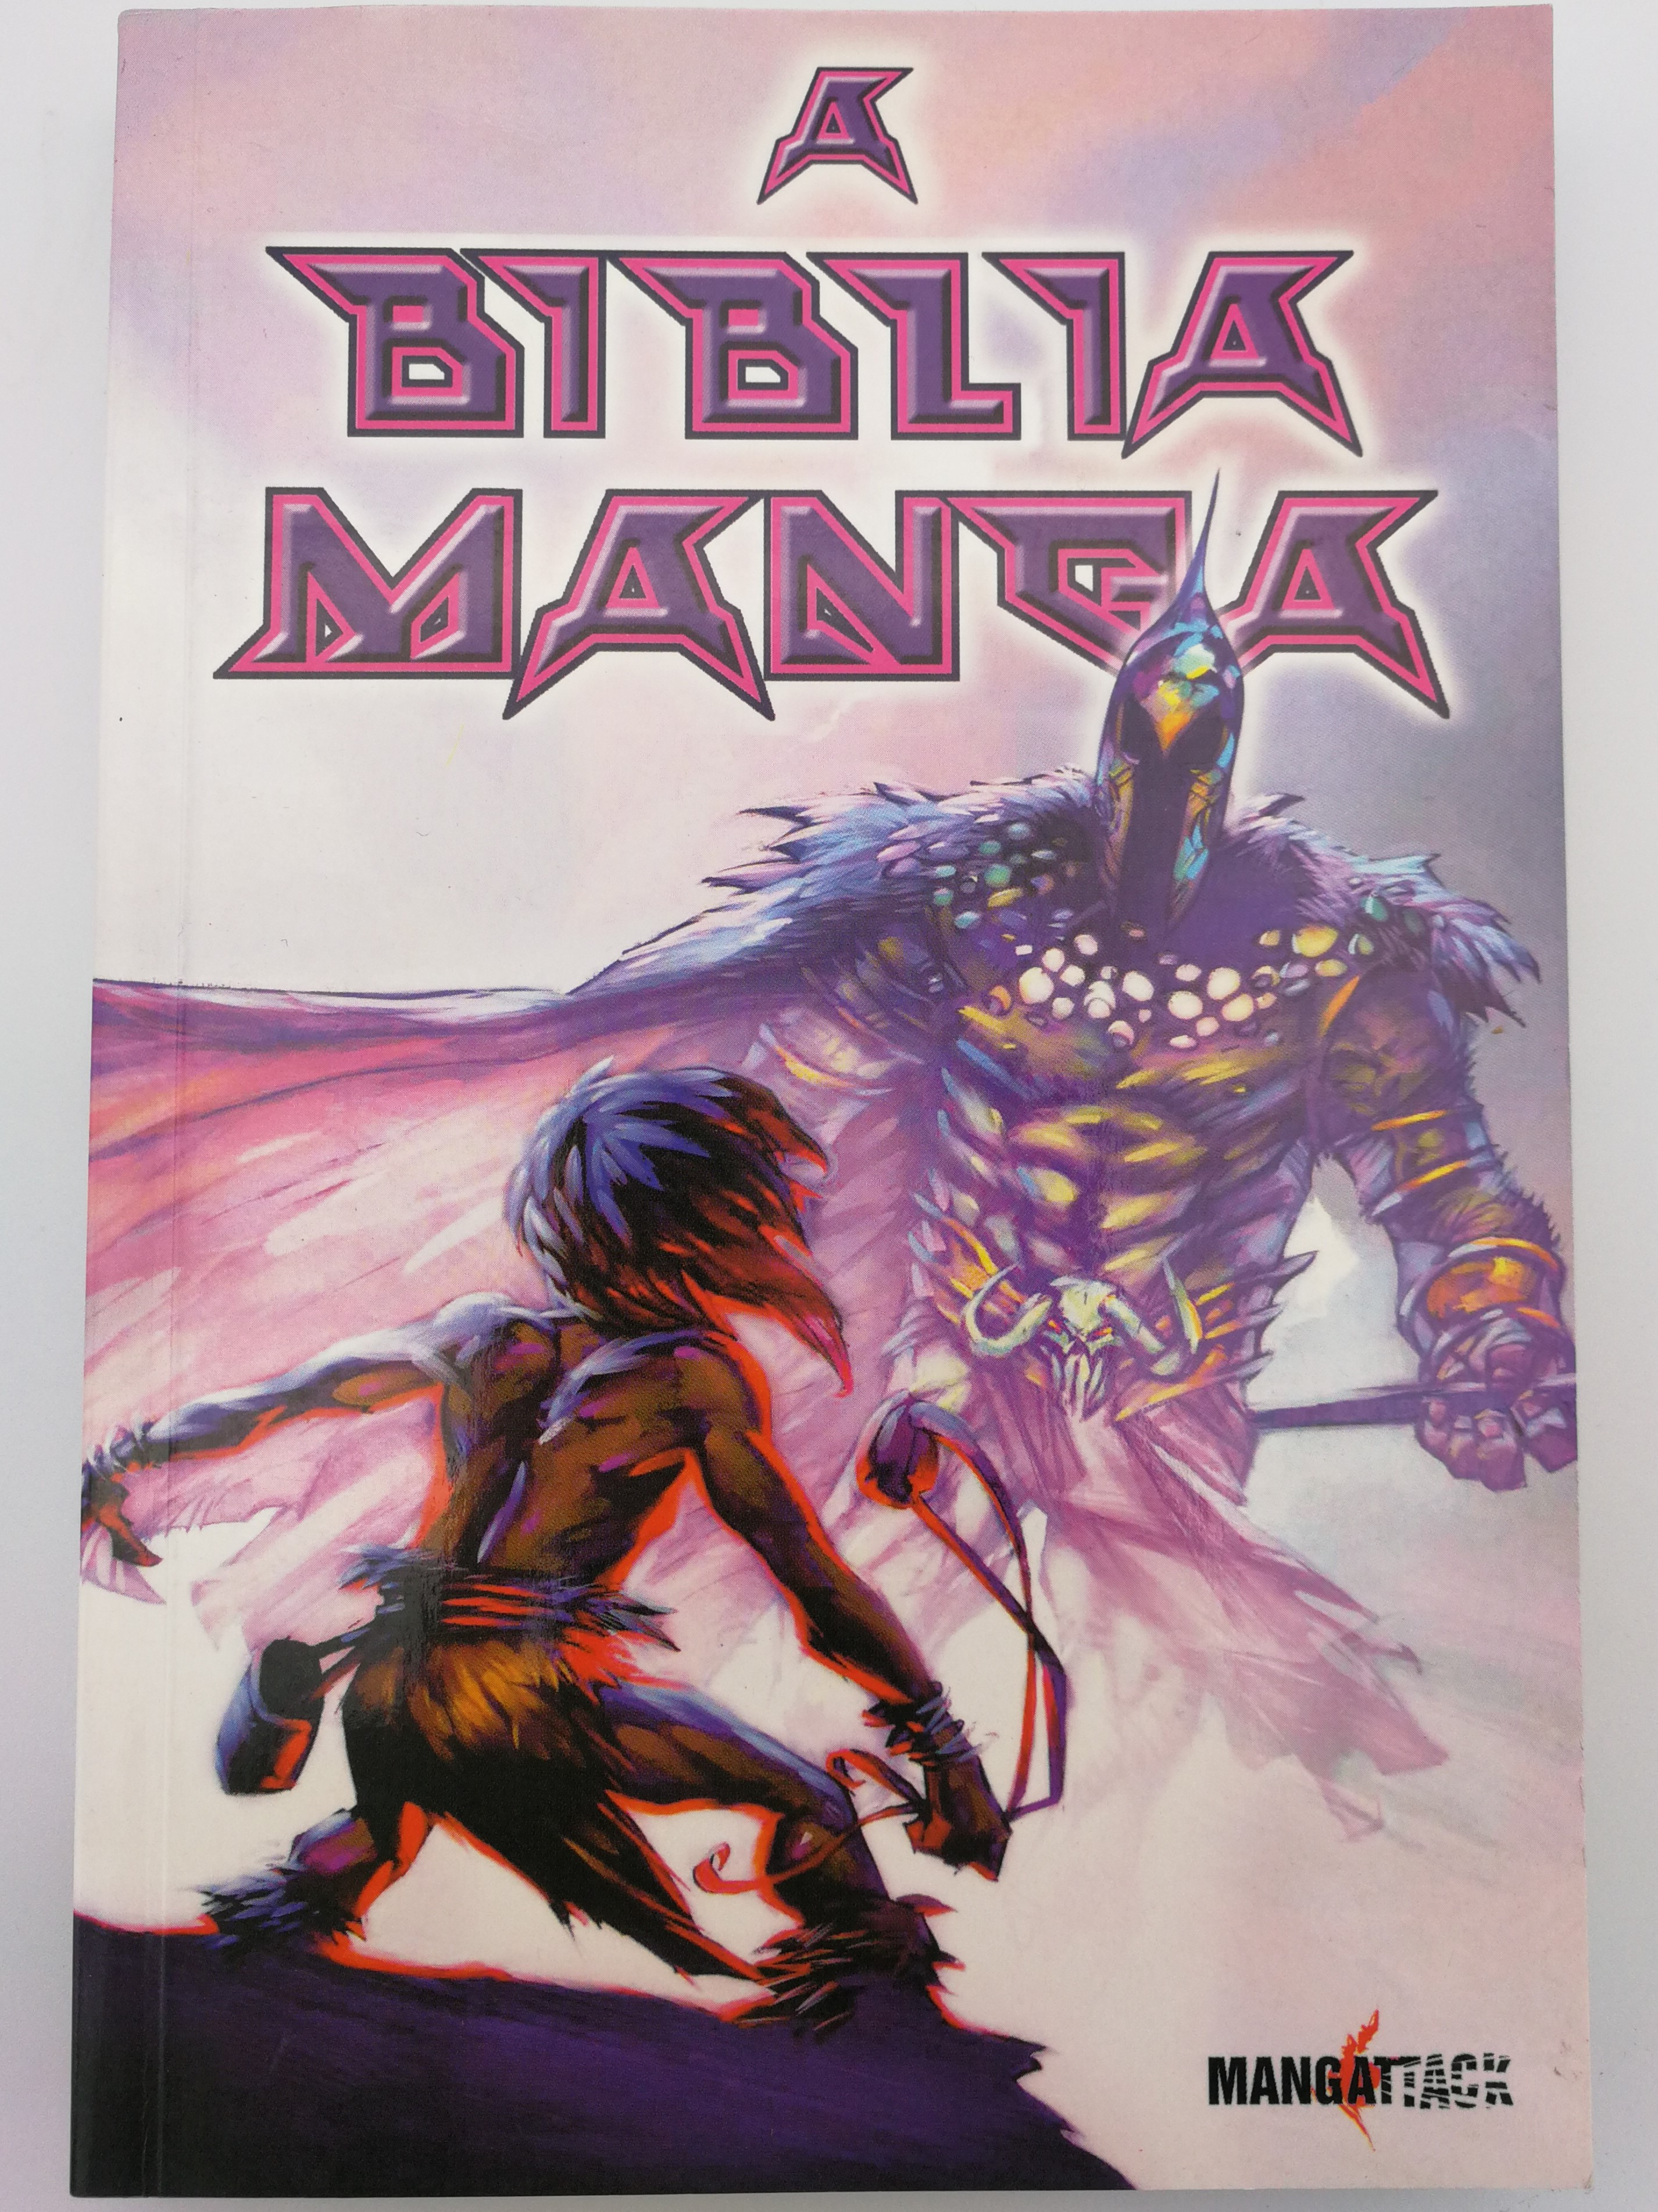 A Biblia Manga by Siku Akin Akinsiku - Hungarian edition of The Manga Bible 1